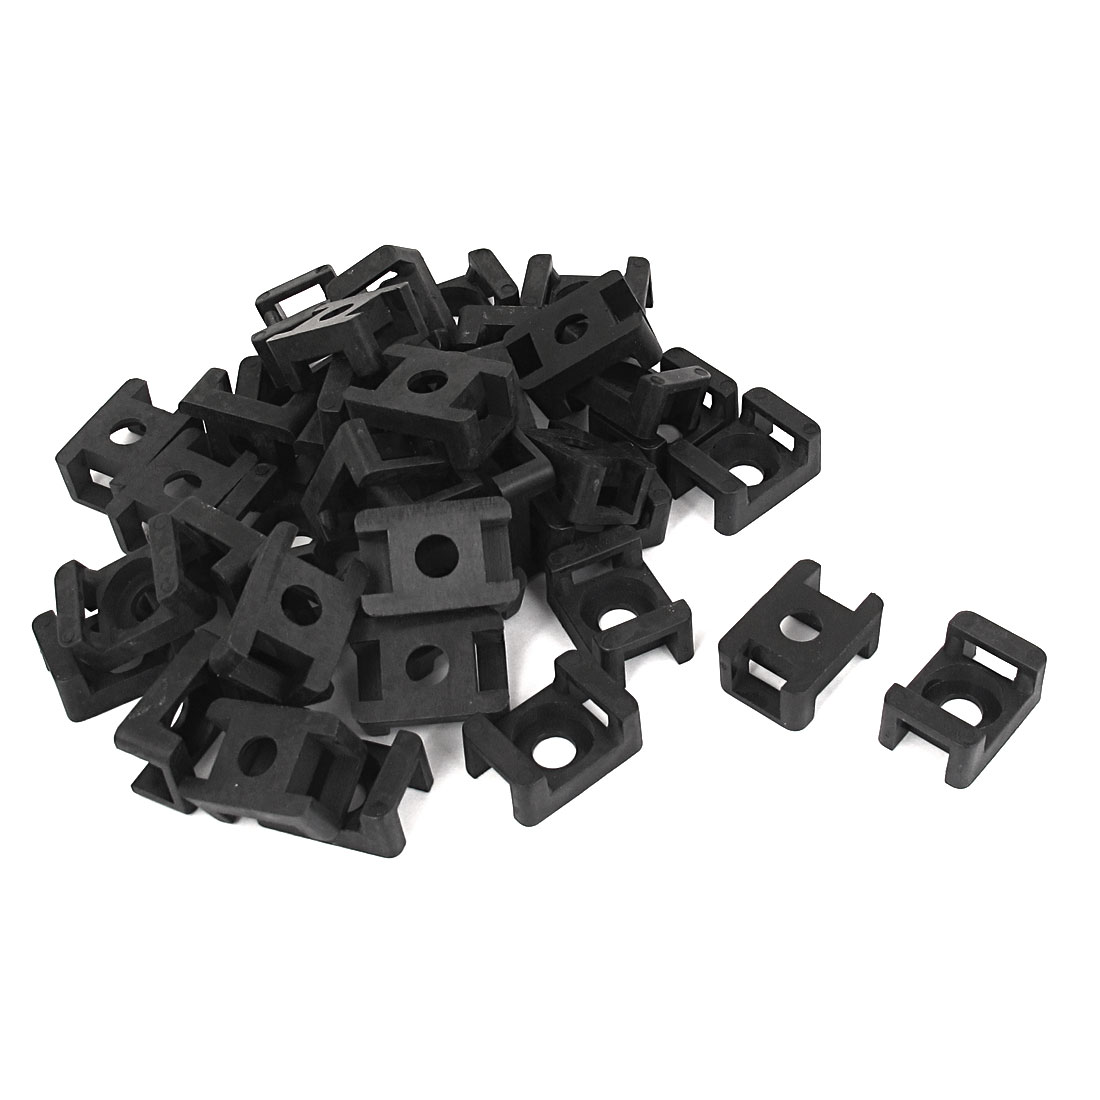 40 Pcs Plastic Wire Cable Tie Screw Fit Saddle Mountings 9mm Max Width